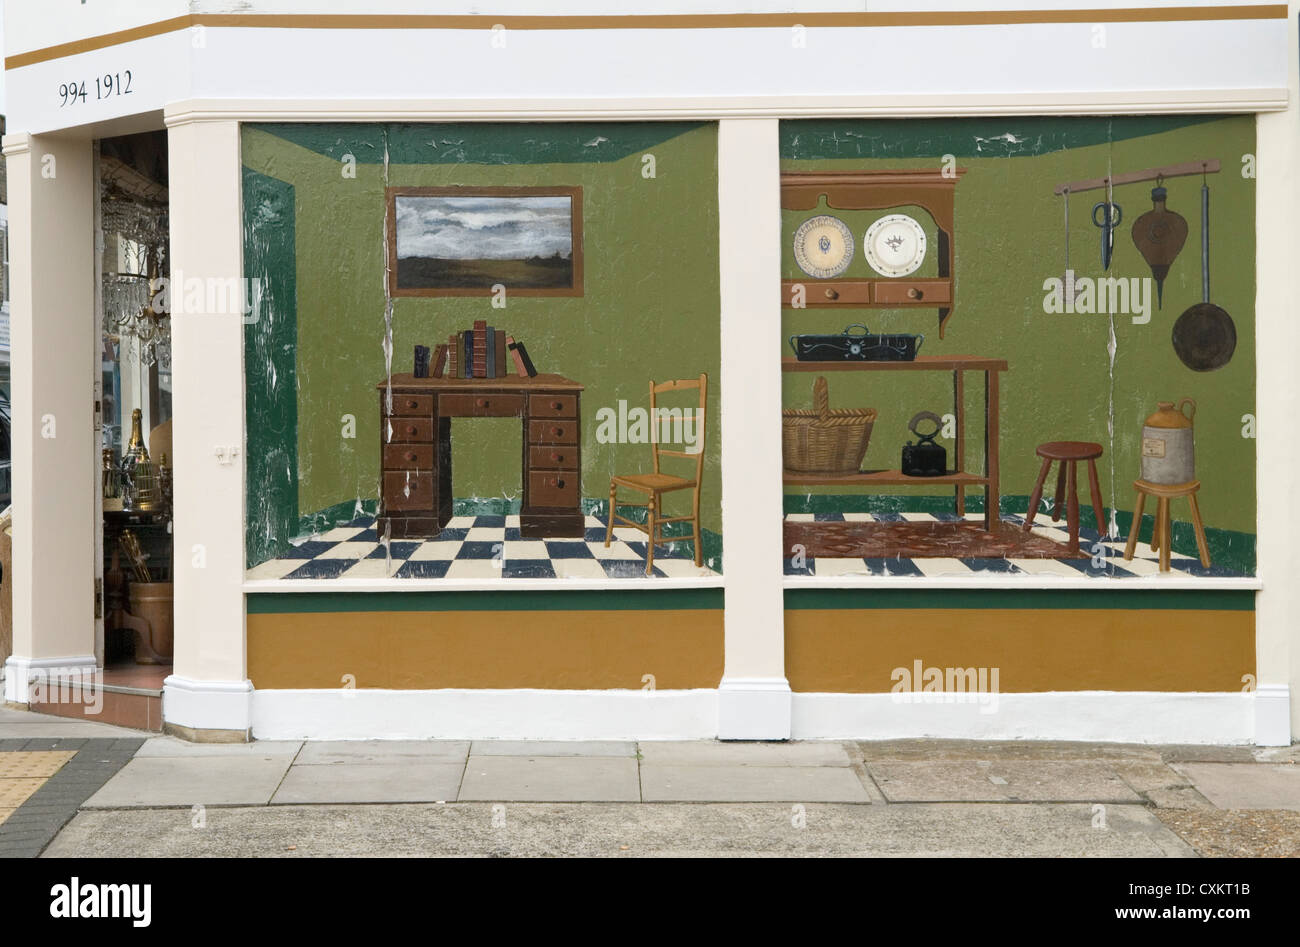 Antique shop Devonshire Street Hammersmith London UK HOMER SYKES - Stock Image